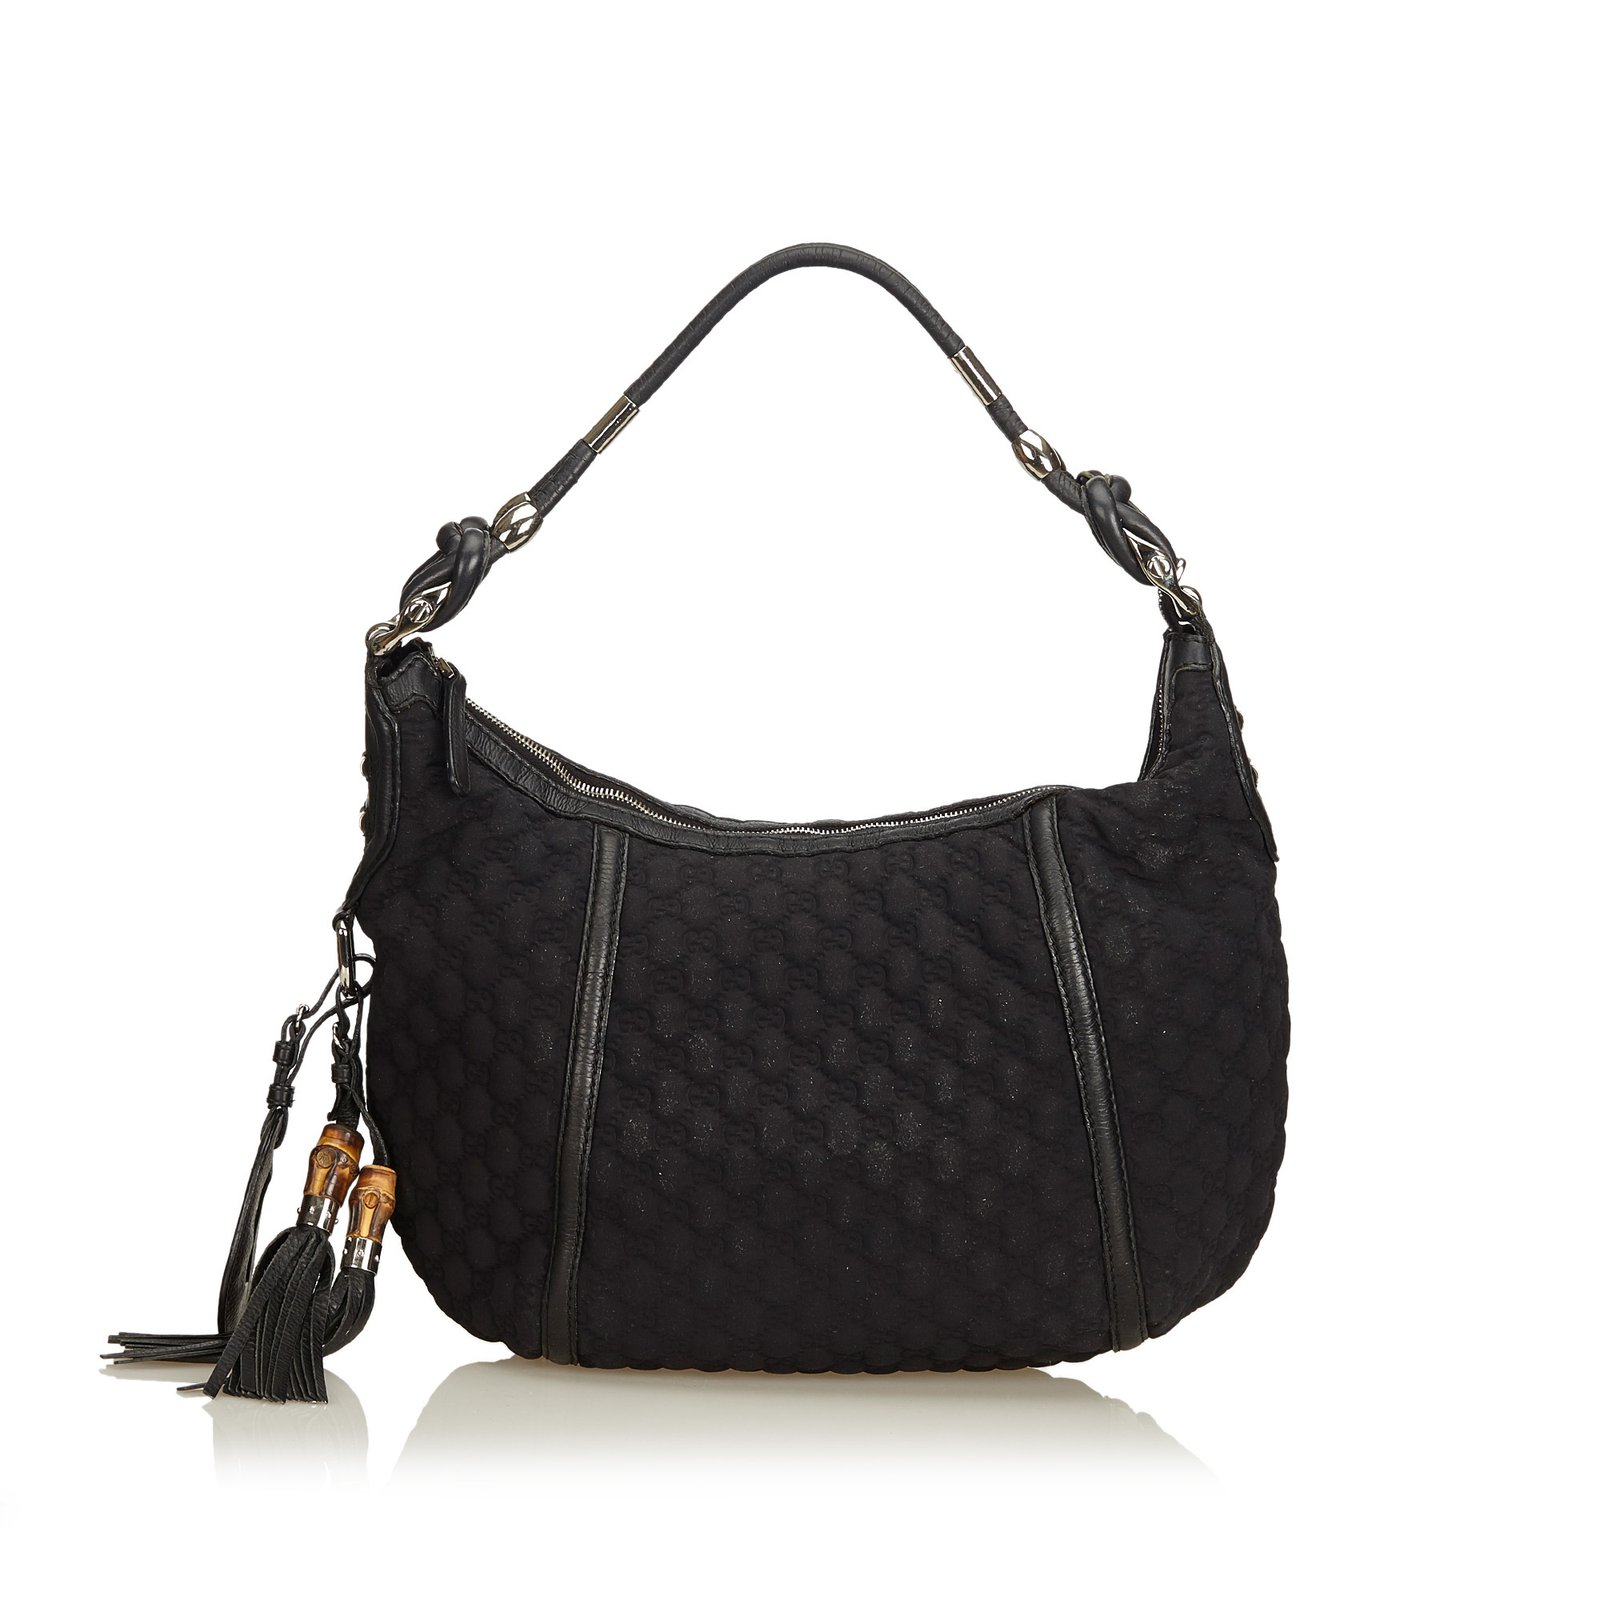 977041a079d0 Gucci Quilted Nylon Techno Hobo Bag Handbags Leather,Other,Nylon,Cloth Black  ref